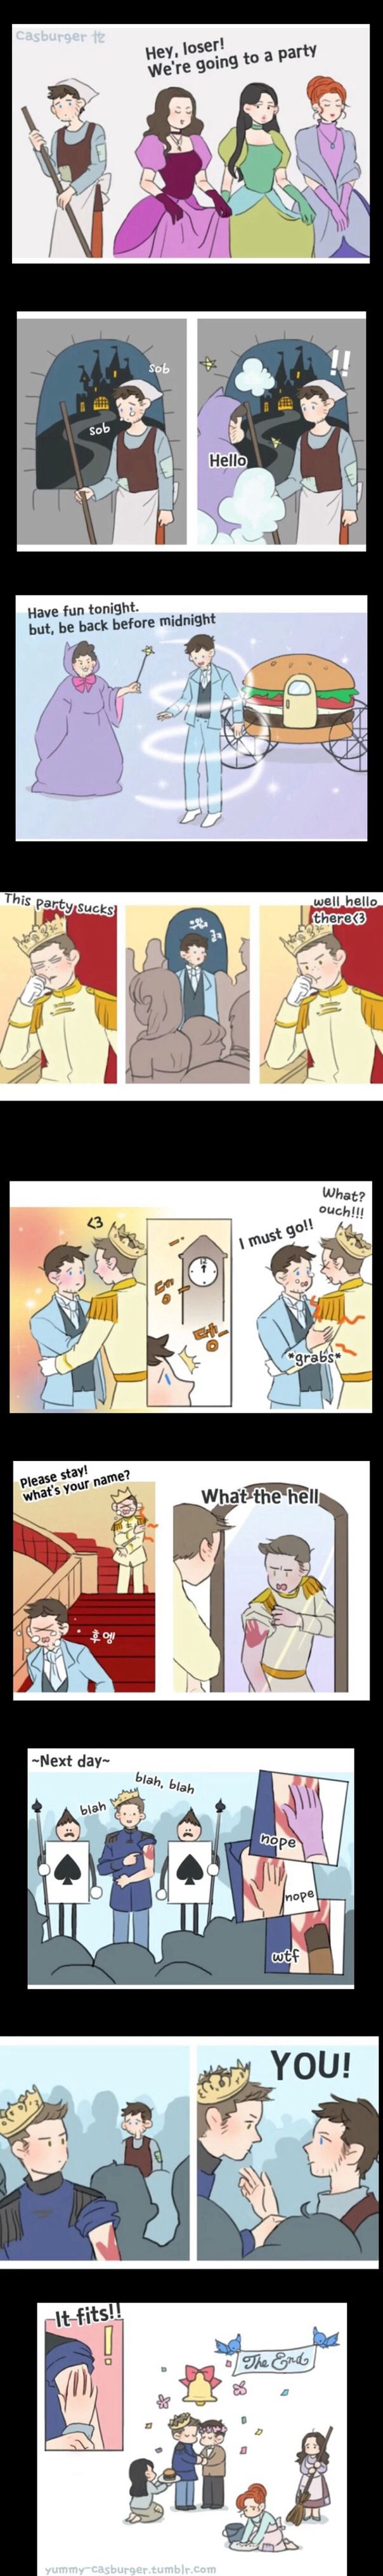 Destiel the cheeseburger at the end XD too adorable